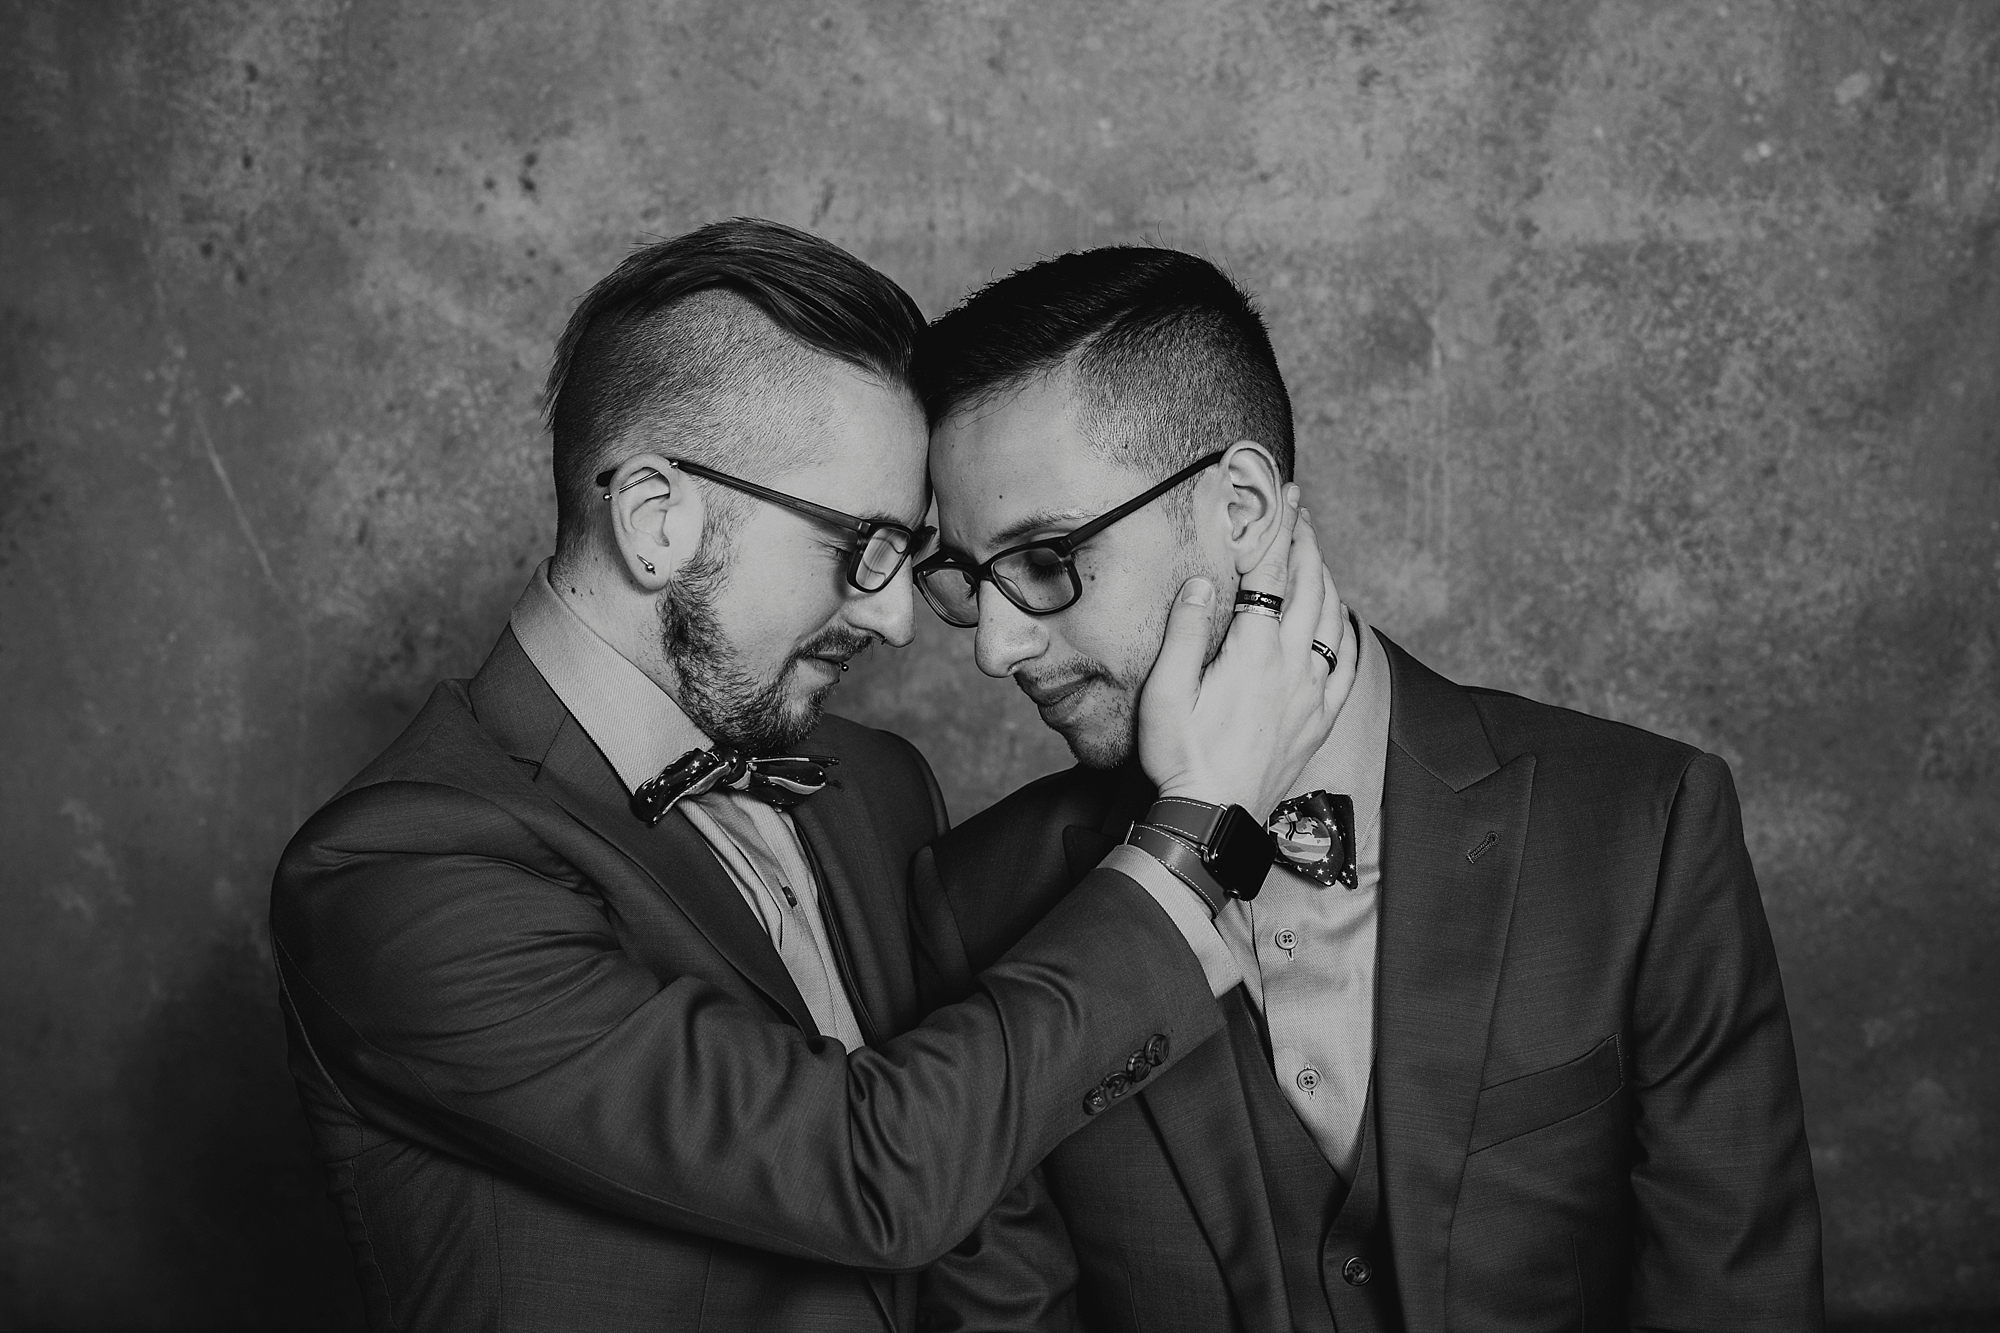 Joe_Mac_Creative_Philadelphia_Philly_LGBT_Gay_Engagement_Wedding_Photography__0093.jpg